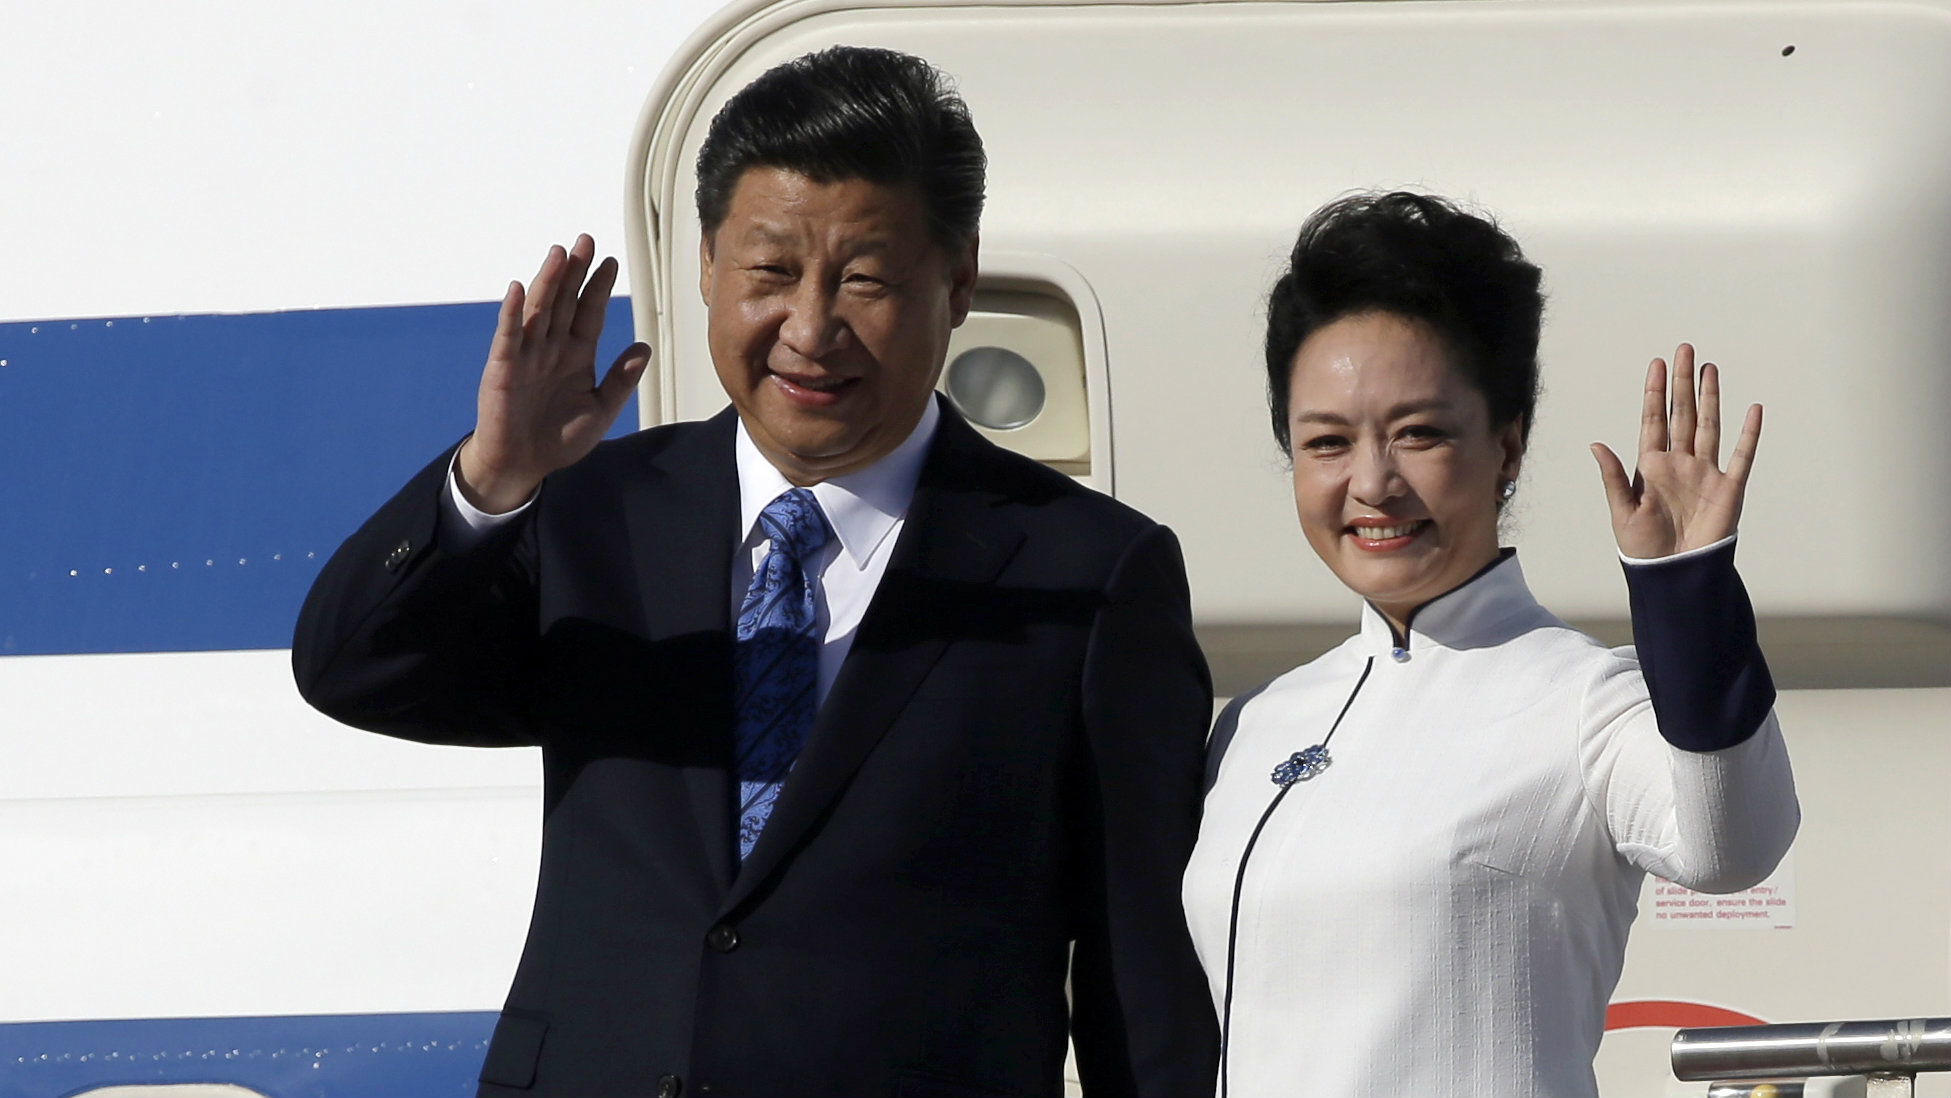 Chinese President Xi Jinping, left, and his wife Peng Liyuan wave upon arrival Tuesday, Sept. 22, 2015, at Boeing Field in Everett, Wash. Xi is spending three days in Seattle before traveling to Washington, D.C., for a White House state dinner on Friday. (AP Photo/Elaine Thompson)